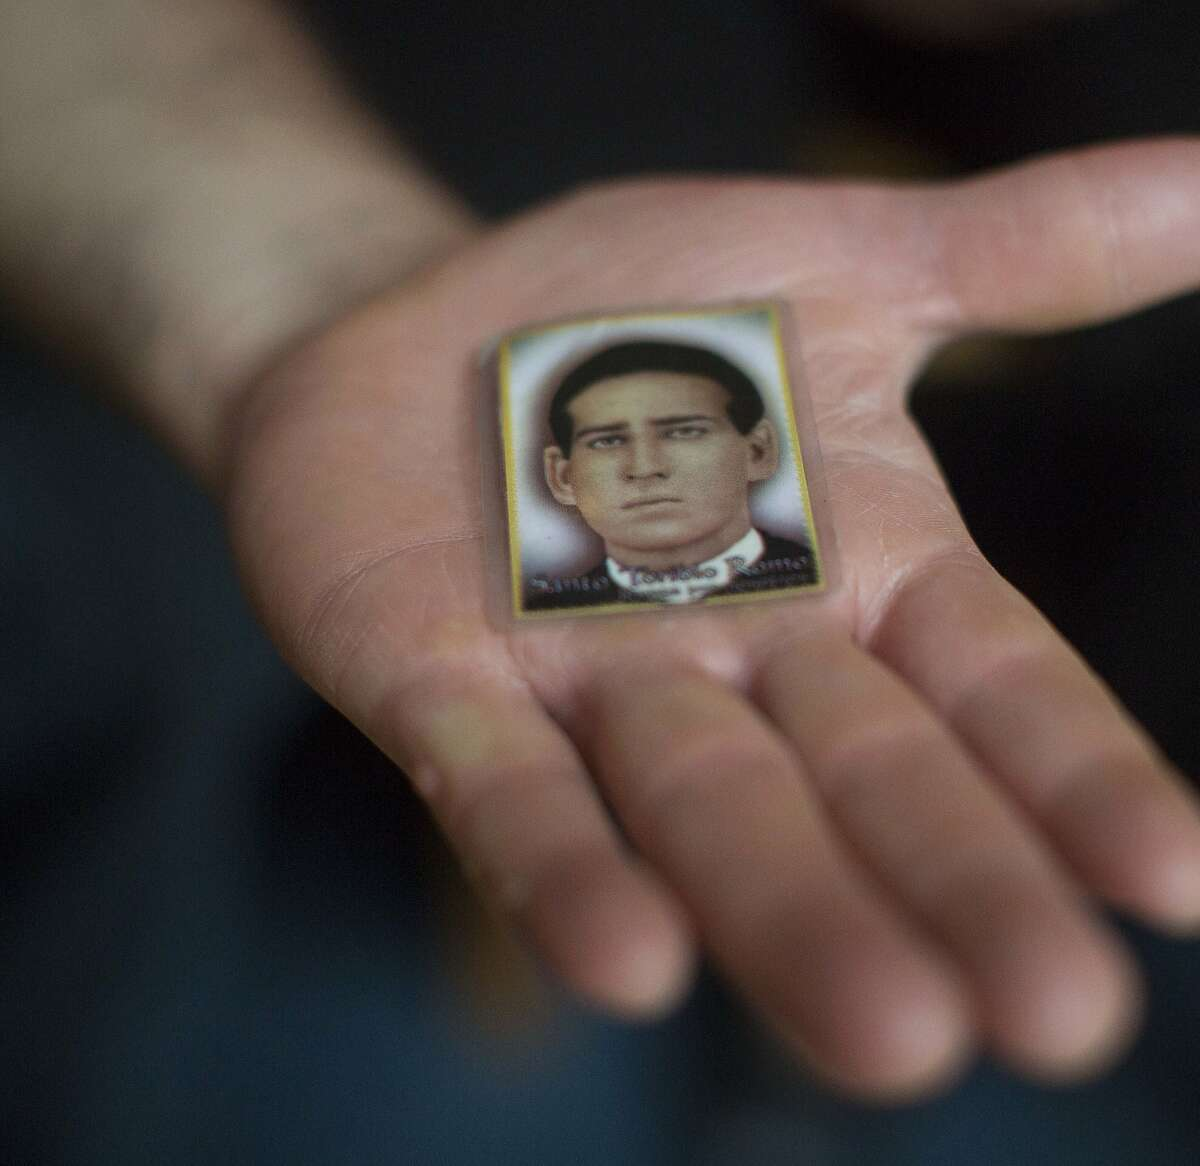 Jose Ochoa holds a photo of Santo Toribio Romo Gonzalez who some immigrants feel watches over them. (Rick Loomis/Los Angeles Times/MCT)